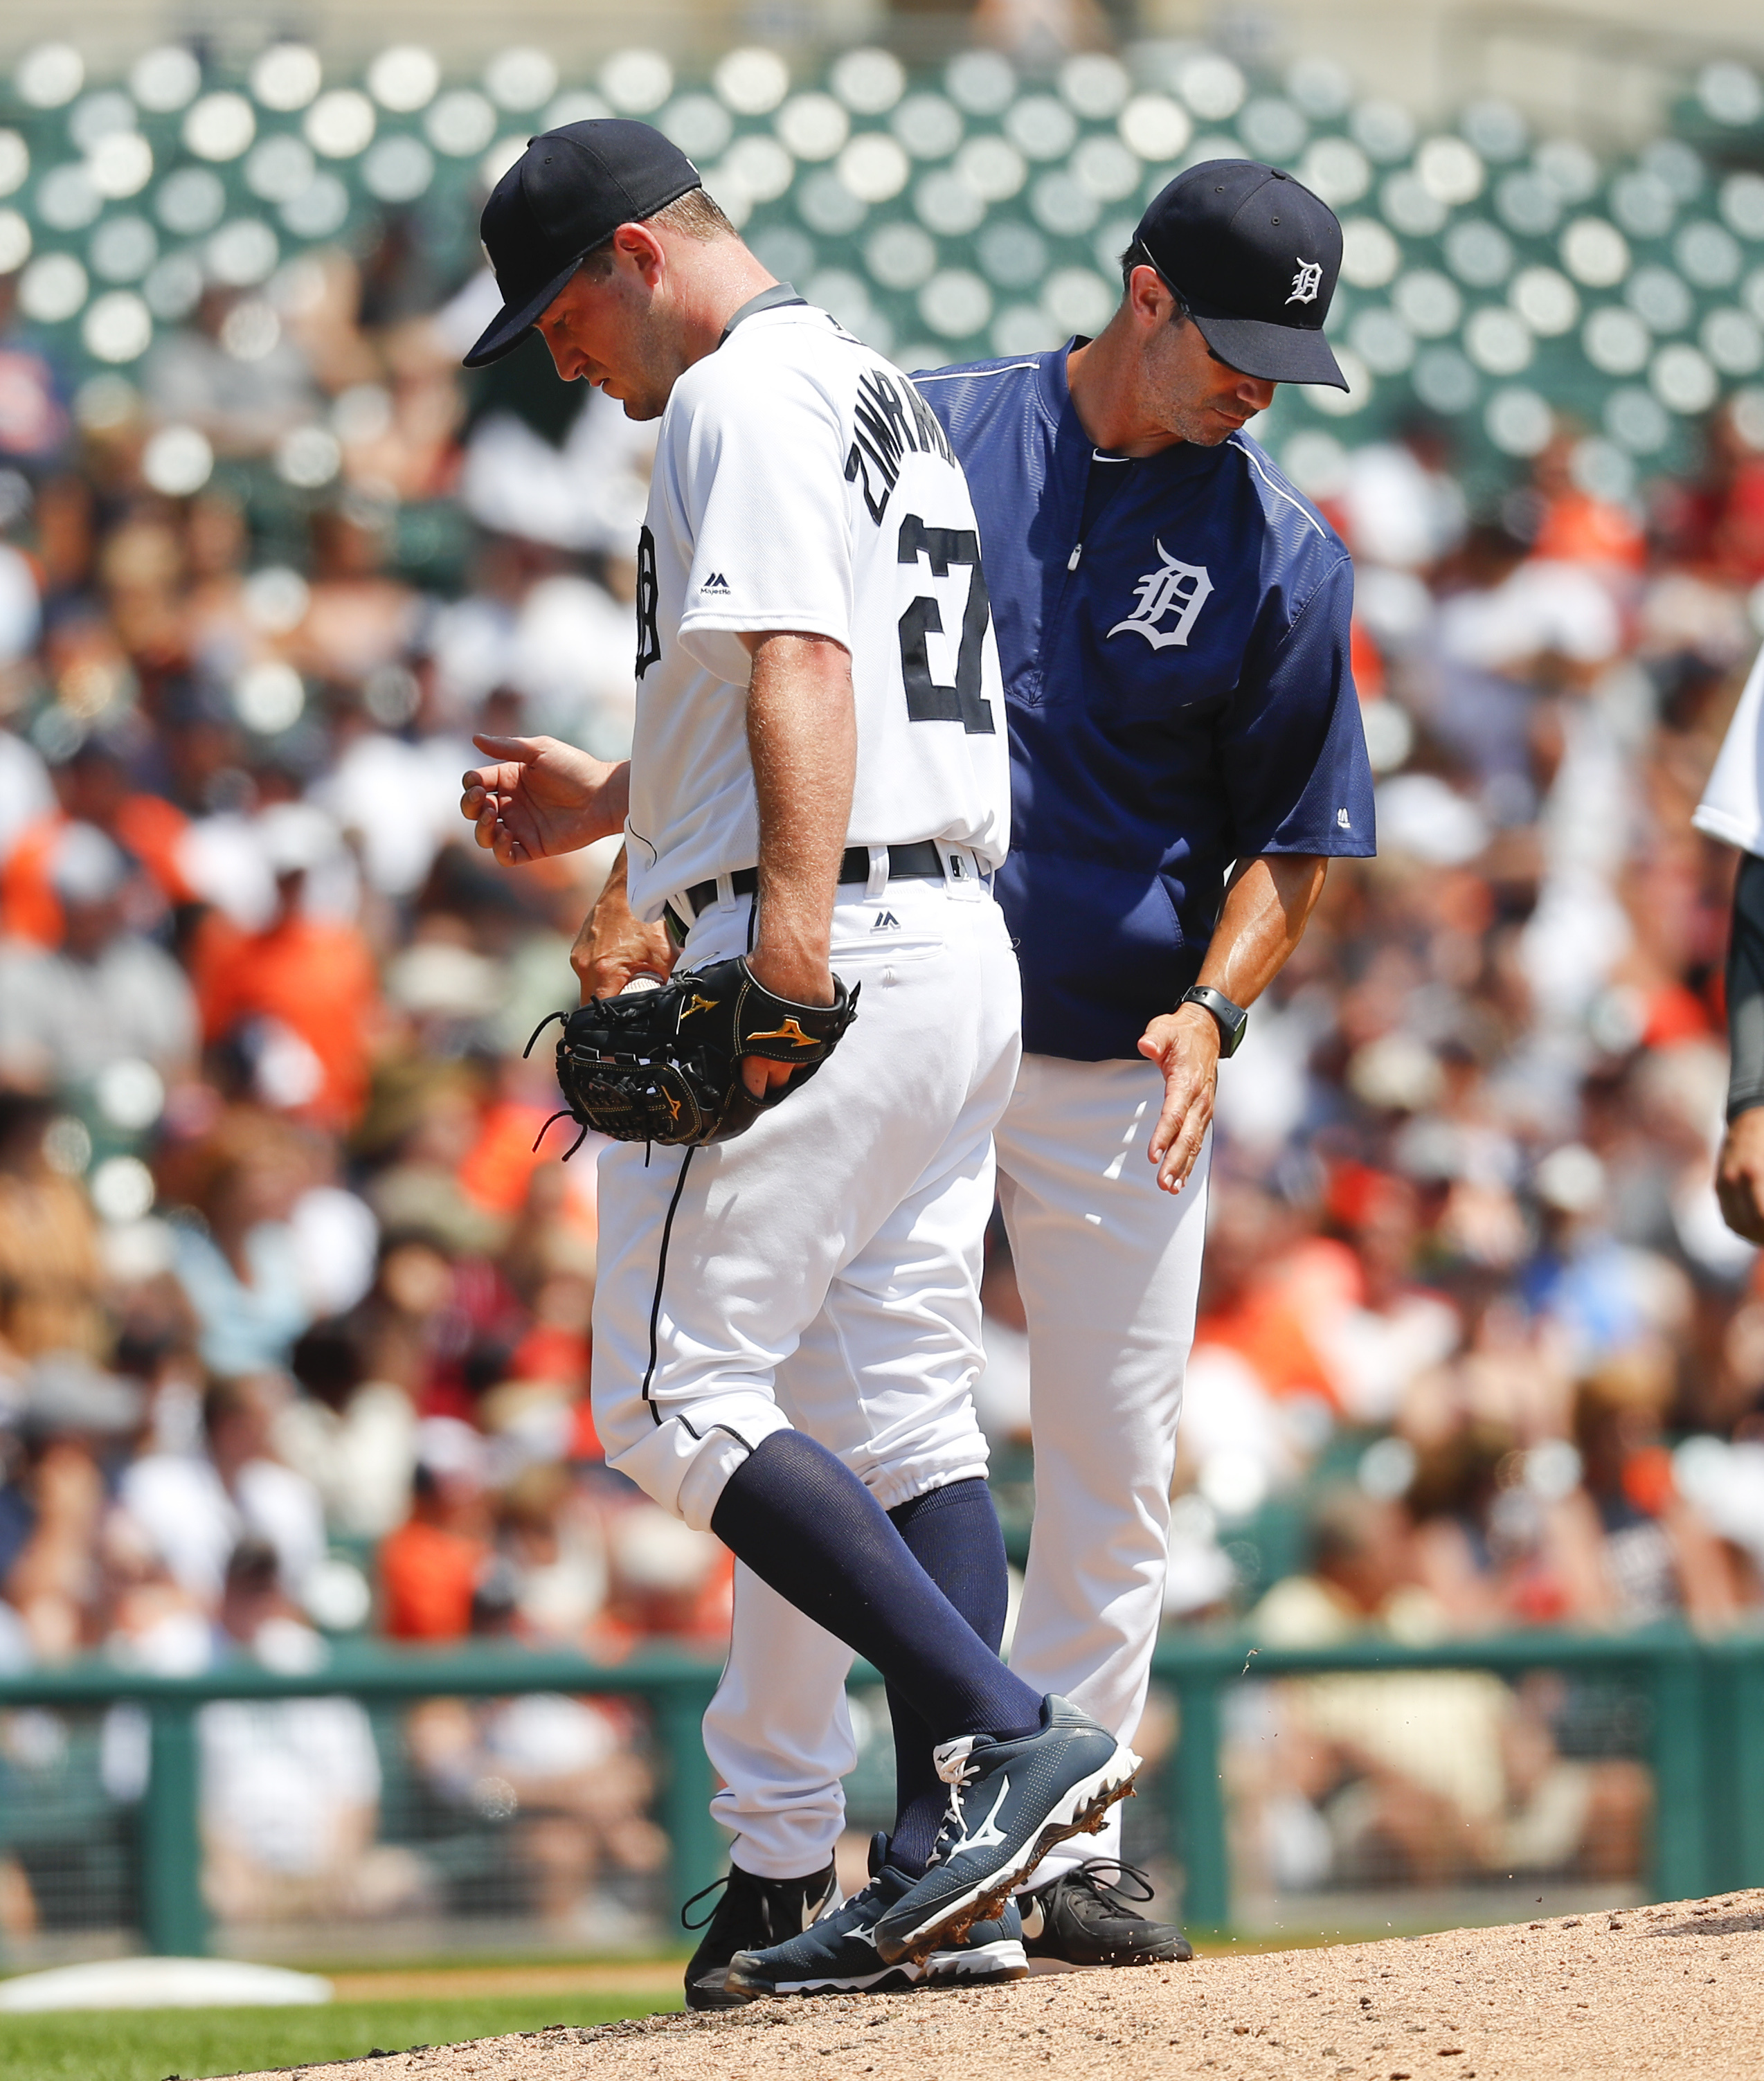 Detroit Tigers pitcher Jordan Zimmermann (27) is relieved by manager Brad Ausmus in the second inning of a baseball game against the Chicago White Sox, Thursday, Aug. 4, 2016 in Detroit. (AP Photo/Paul Sancya)